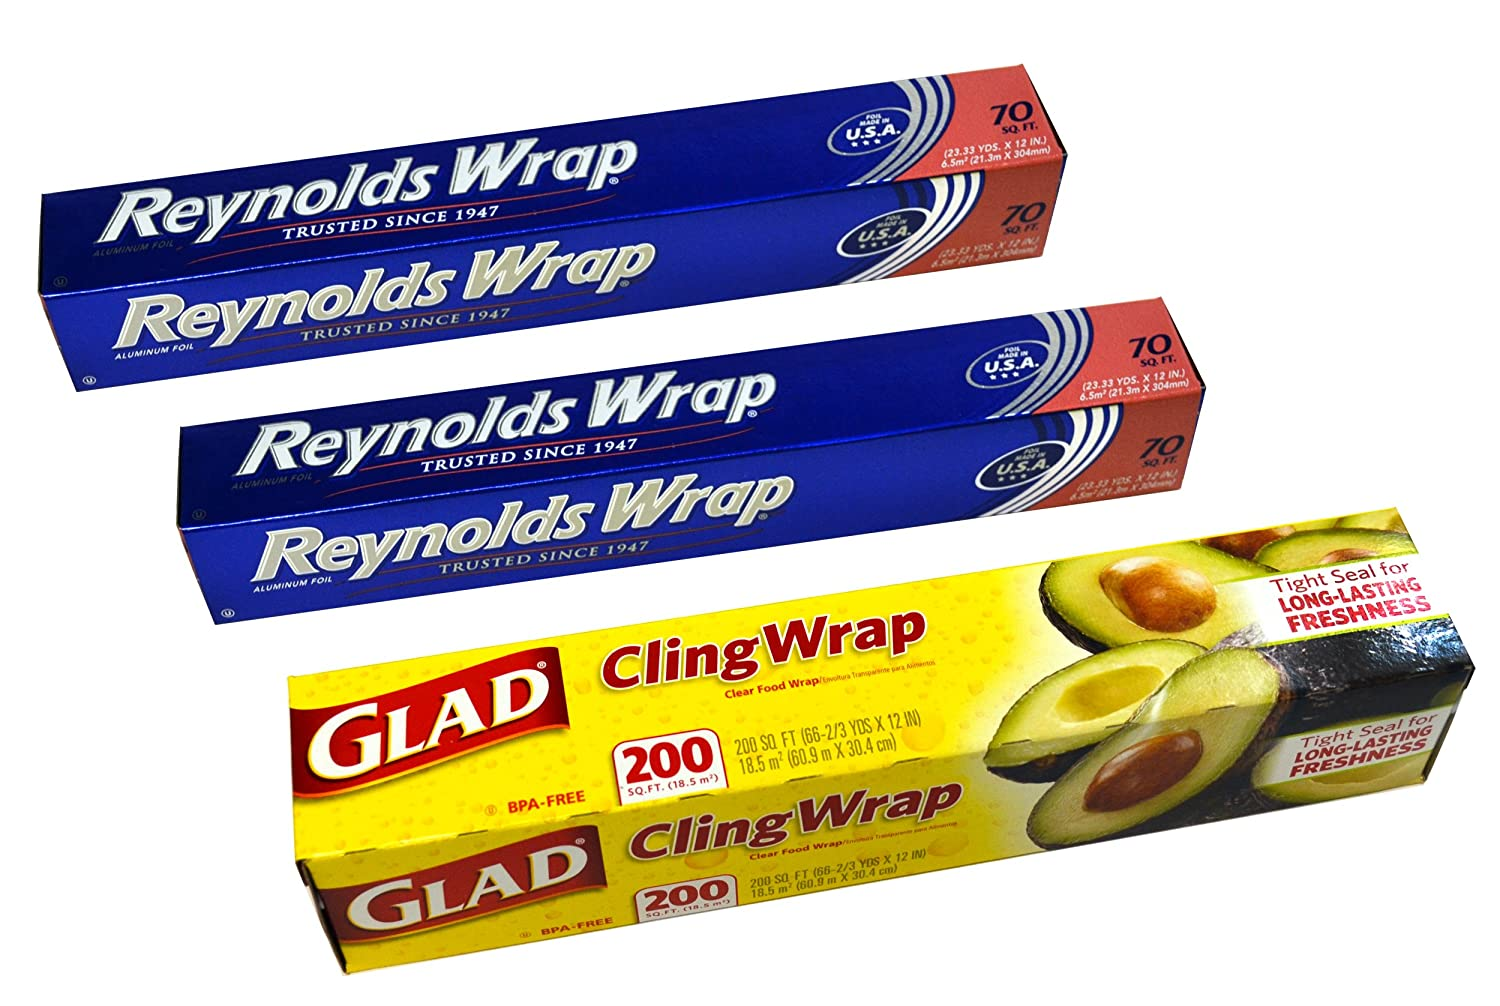 Two Reynolds Wrap Aluminum Foil (140 Sq Ft Total) & One Glad Cling Wrap (200 Sq Ft) Bundle